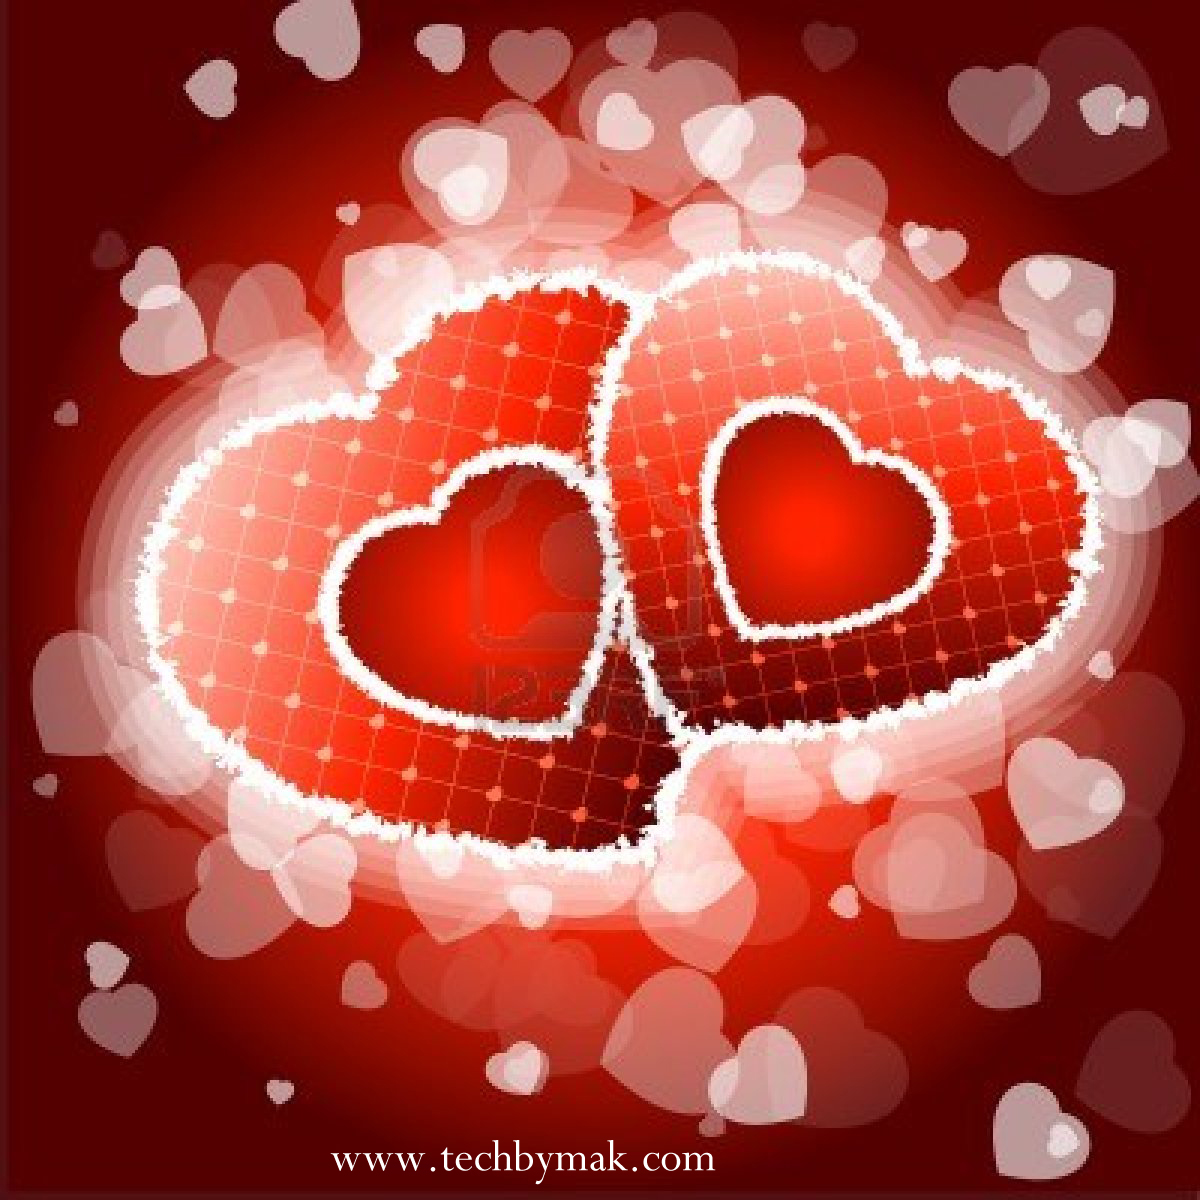 Valentines day Hearts Hd wallpapers Pictures Photos 2014